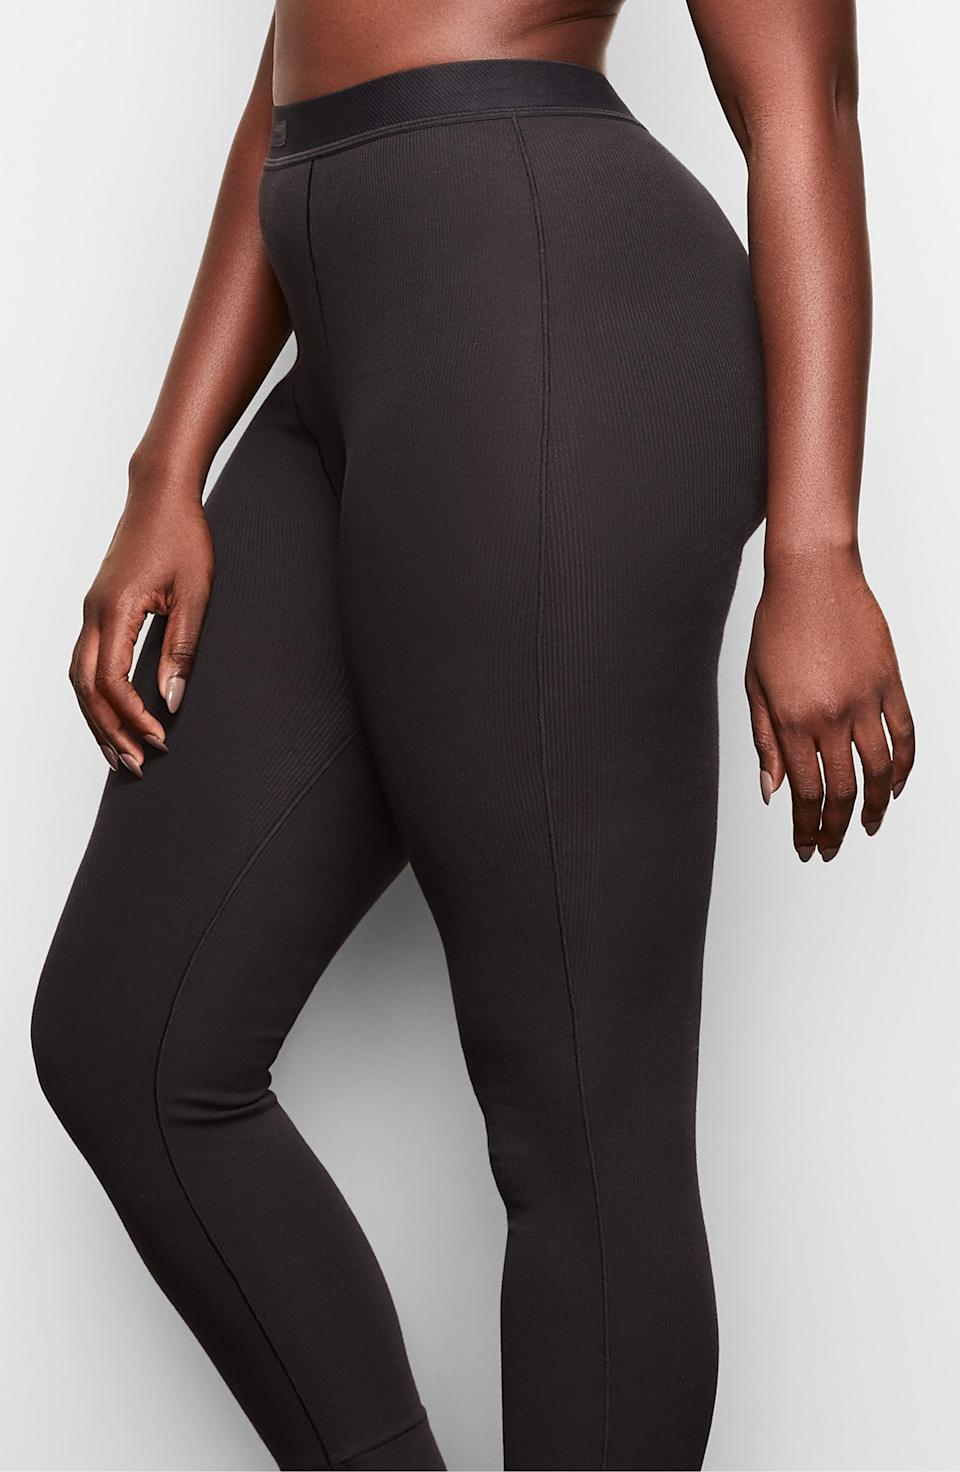 """<p><strong>SKIMS</strong></p><p>nordstrom.com</p><p><strong>$52.00</strong></p><p><a href=""""https://go.redirectingat.com?id=74968X1596630&url=https%3A%2F%2Fshop.nordstrom.com%2Fs%2Fskims-cotton-rib-thermal-leggings-regular-plus-size%2F5547437&sref=https%3A%2F%2Fwww.cosmopolitan.com%2Fhealth-fitness%2Fg26305843%2Fbutt-sculpting-leggings%2F"""" rel=""""nofollow noopener"""" target=""""_blank"""" data-ylk=""""slk:SHOP NOW"""" class=""""link rapid-noclick-resp"""">SHOP NOW</a></p><p>If there's anyone who knows about bringing attention to the bootay, it's definitely Kim Kardashian. Her leggings are thin and lightweight, but they've got just the right amount of lift in <em>certain</em> areas.</p>"""